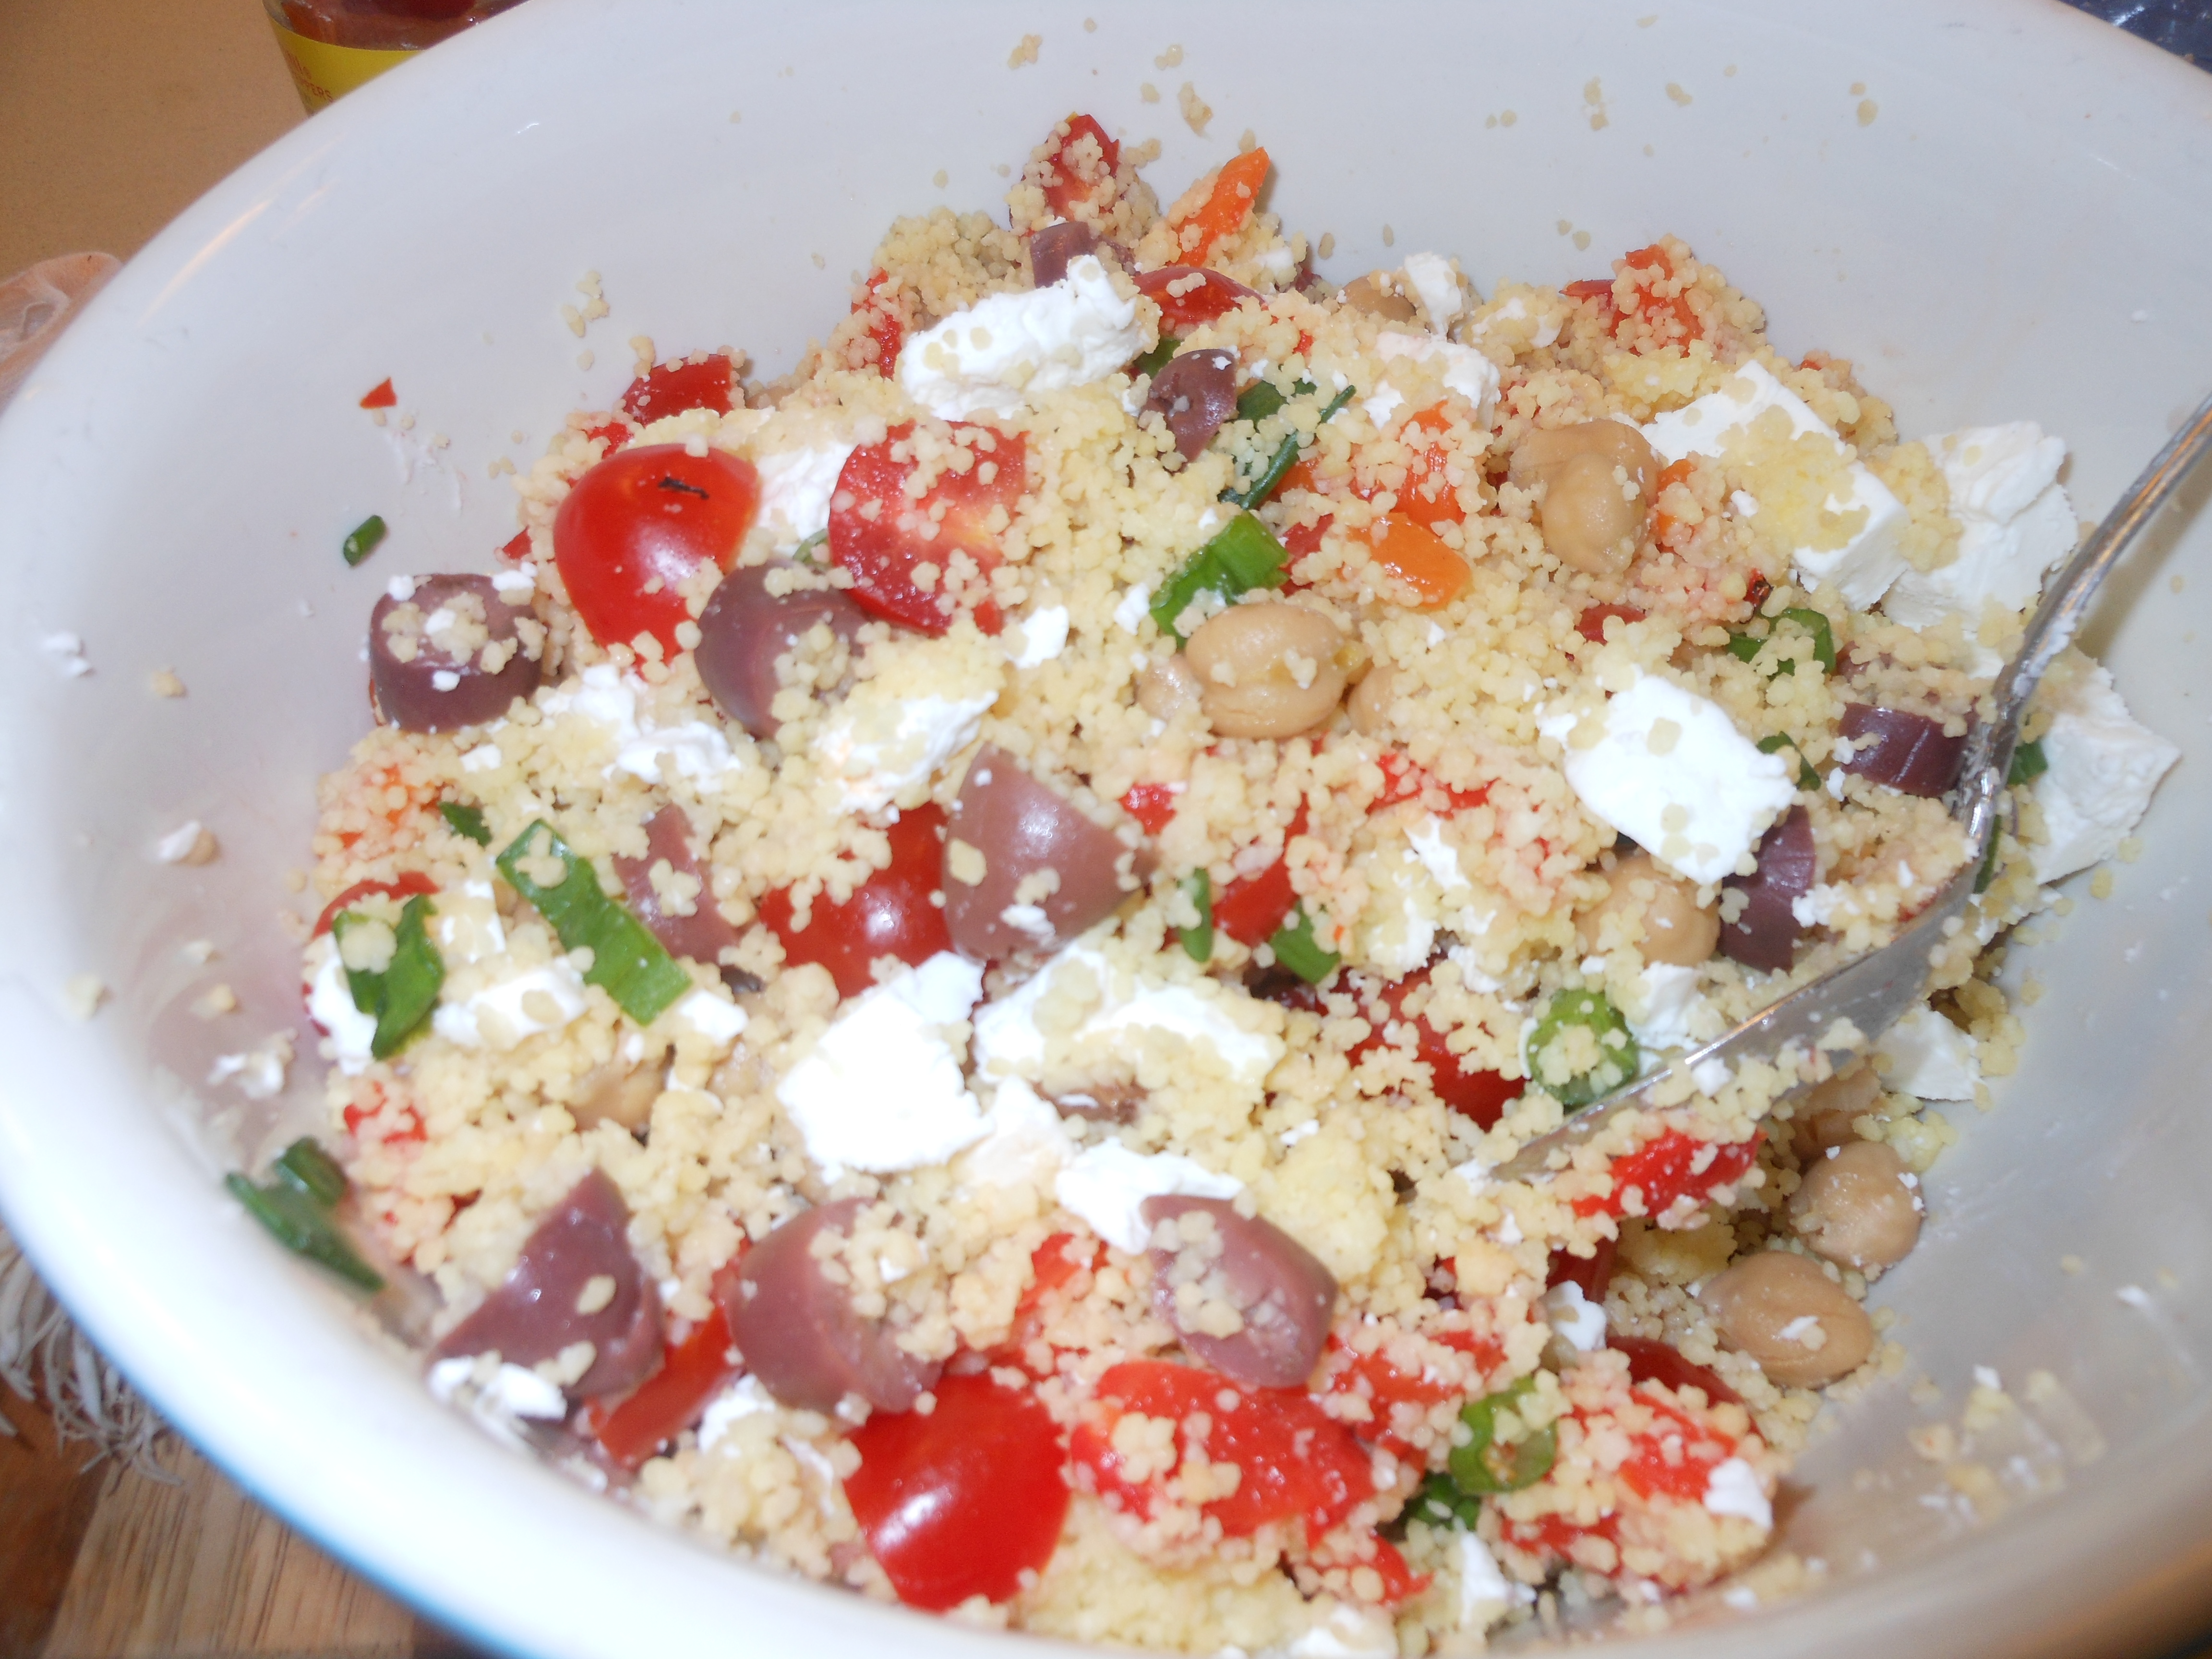 Mediterranean Style Salad Dressing With Couscous Or Quinoa